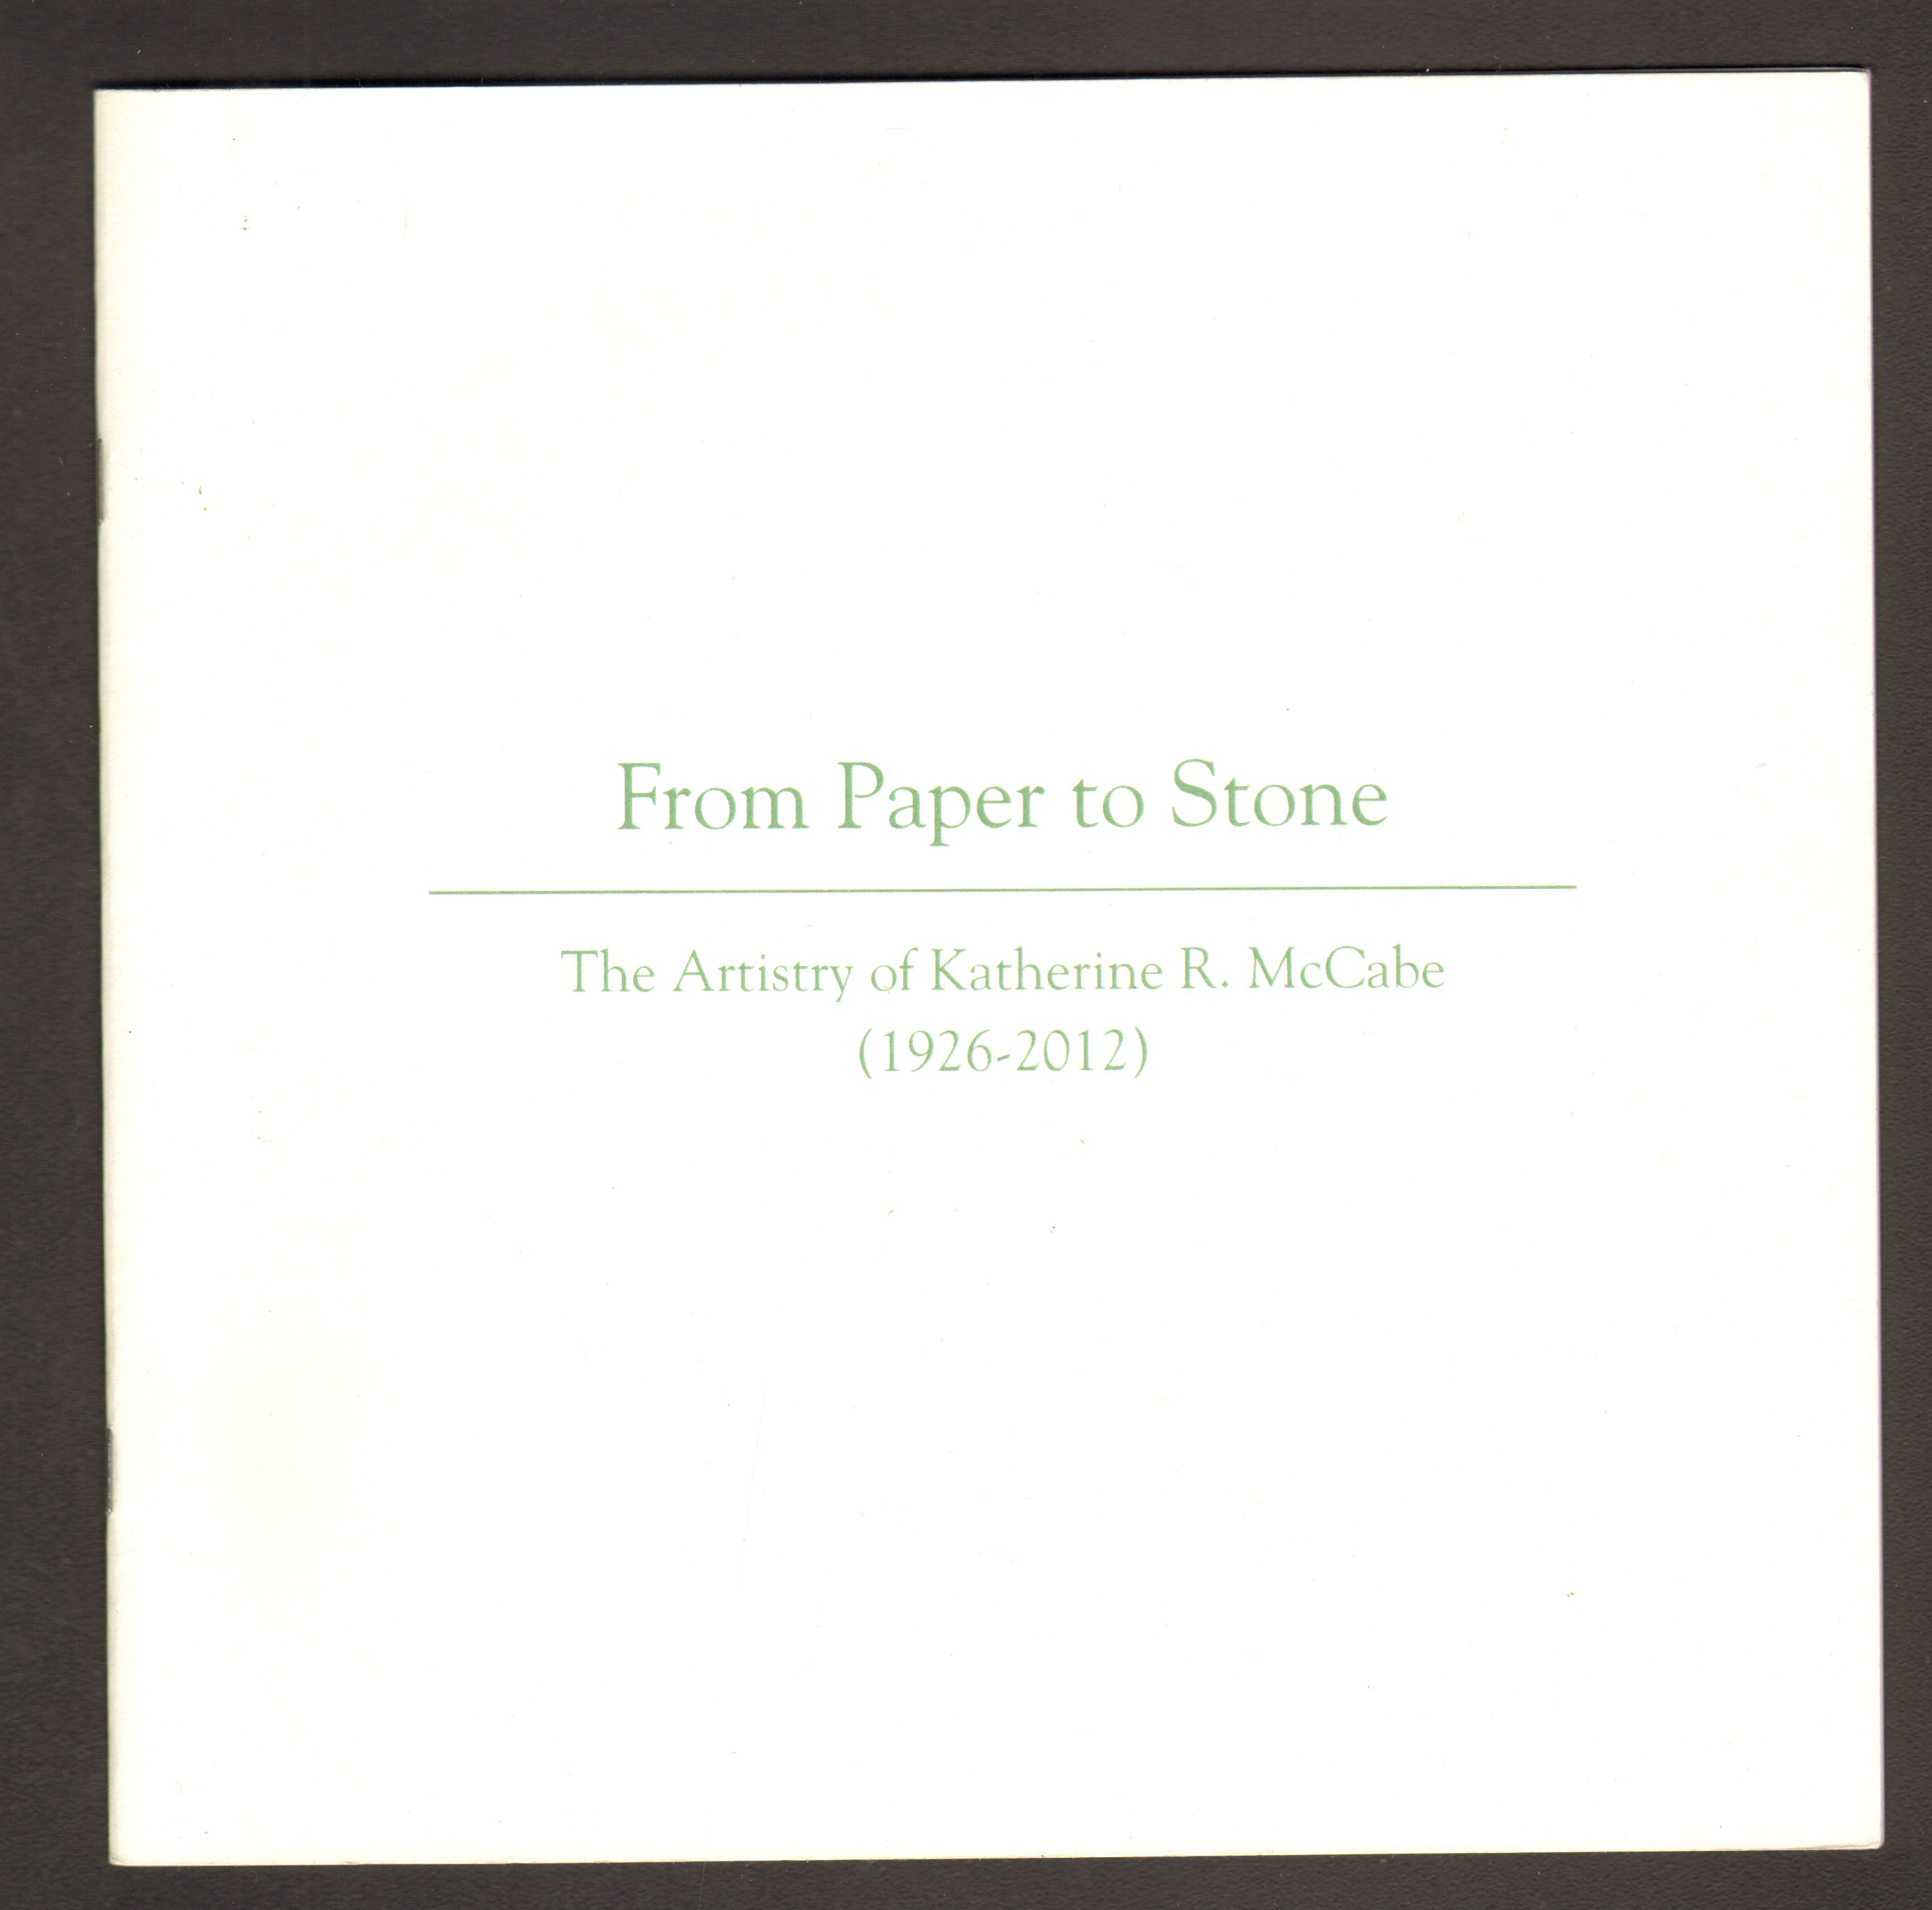 Image for From Paper to Stone: The Artistry of Katherine R. McCabe (1926-2012)